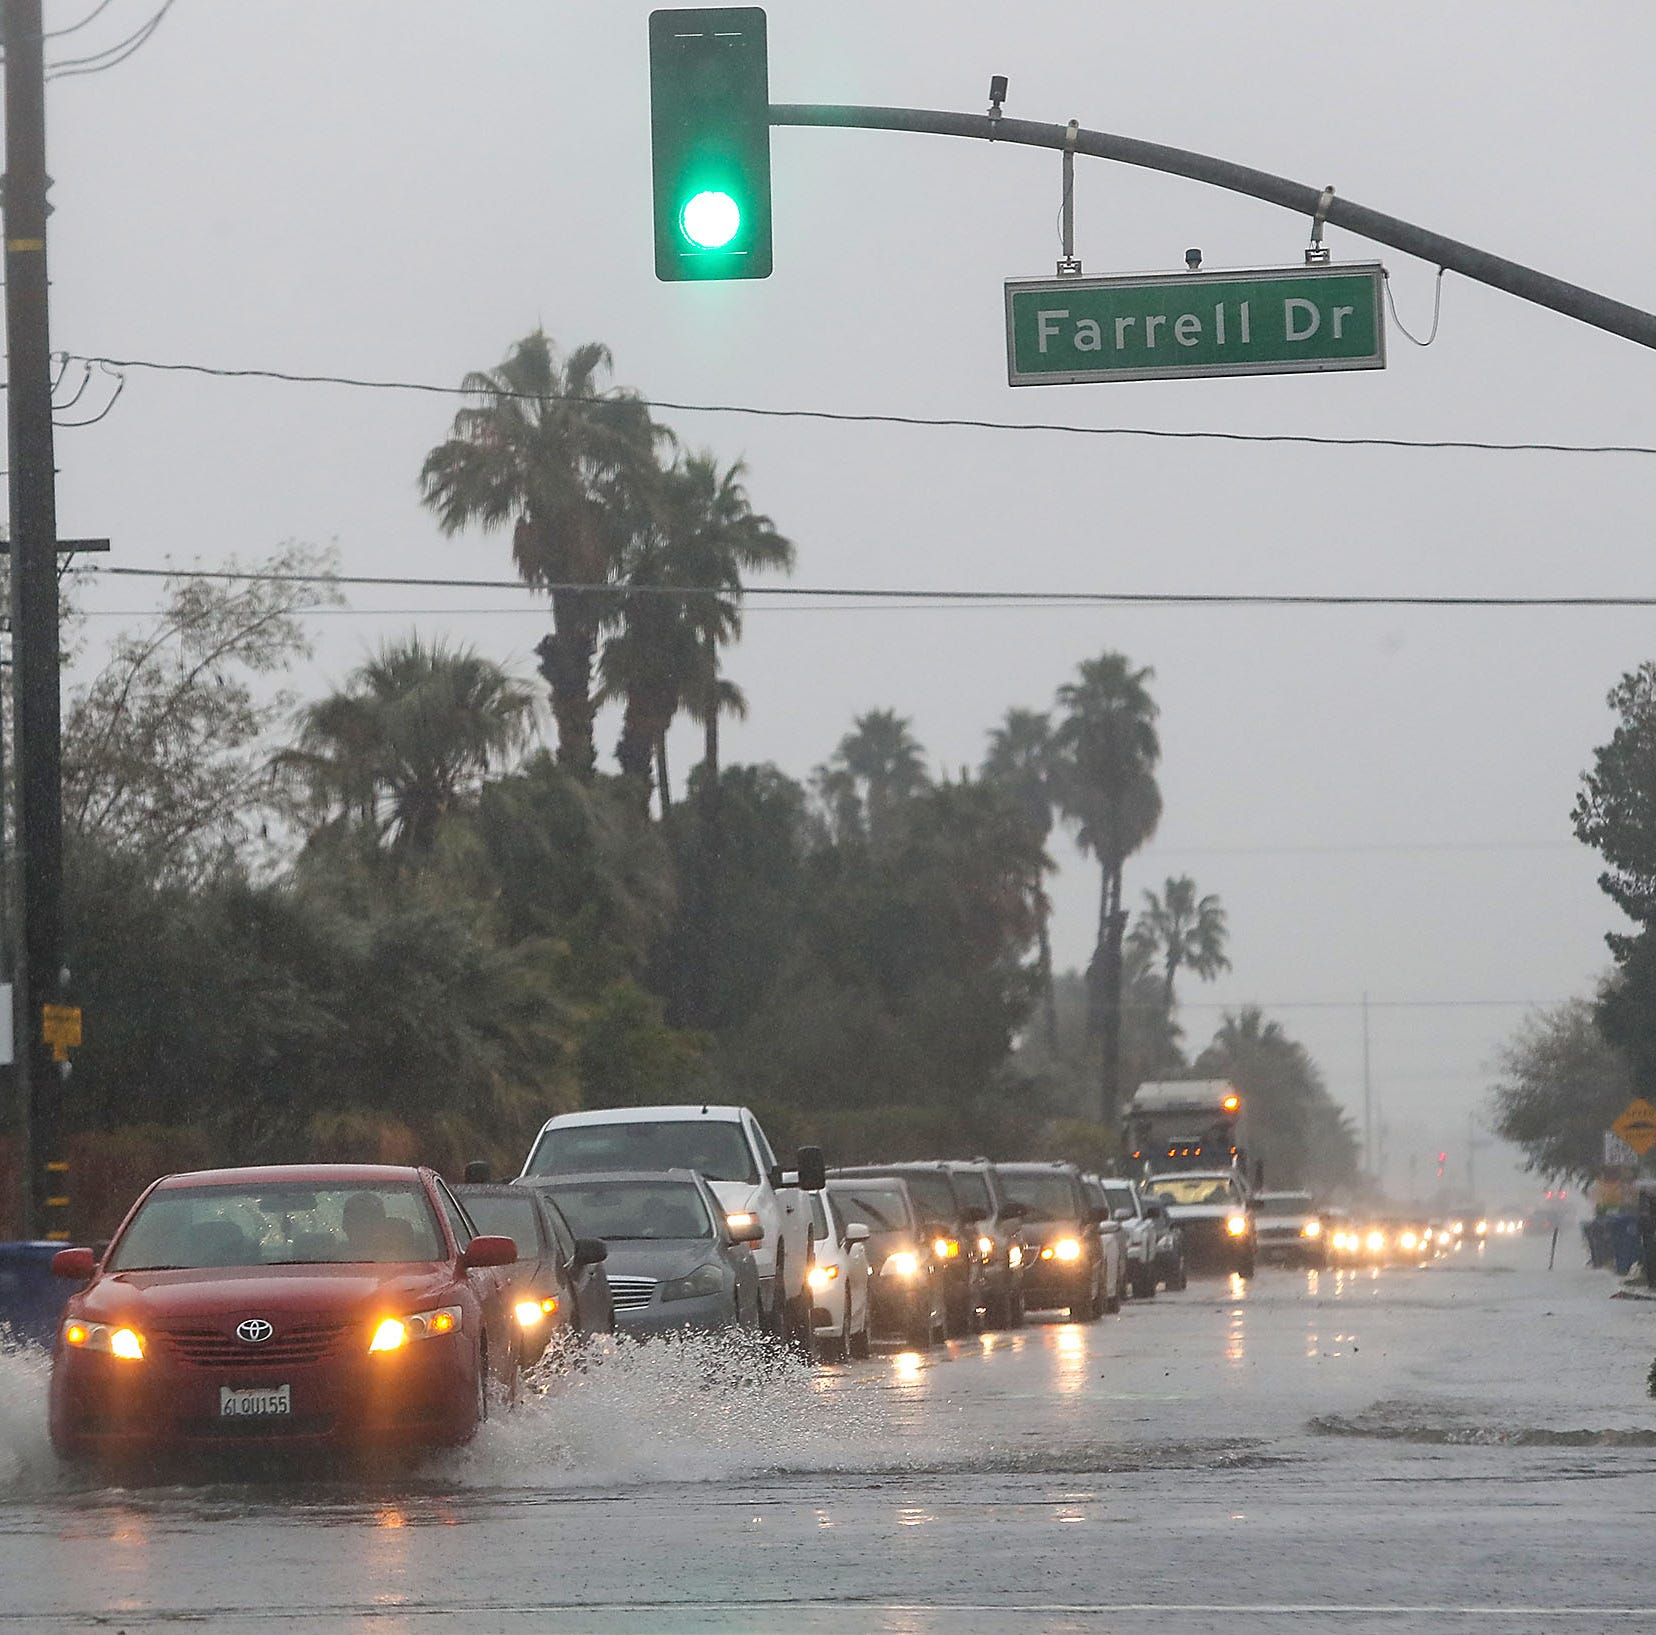 No floods or road closures expected from this Coachella Valley rain, but by Friday look for snow